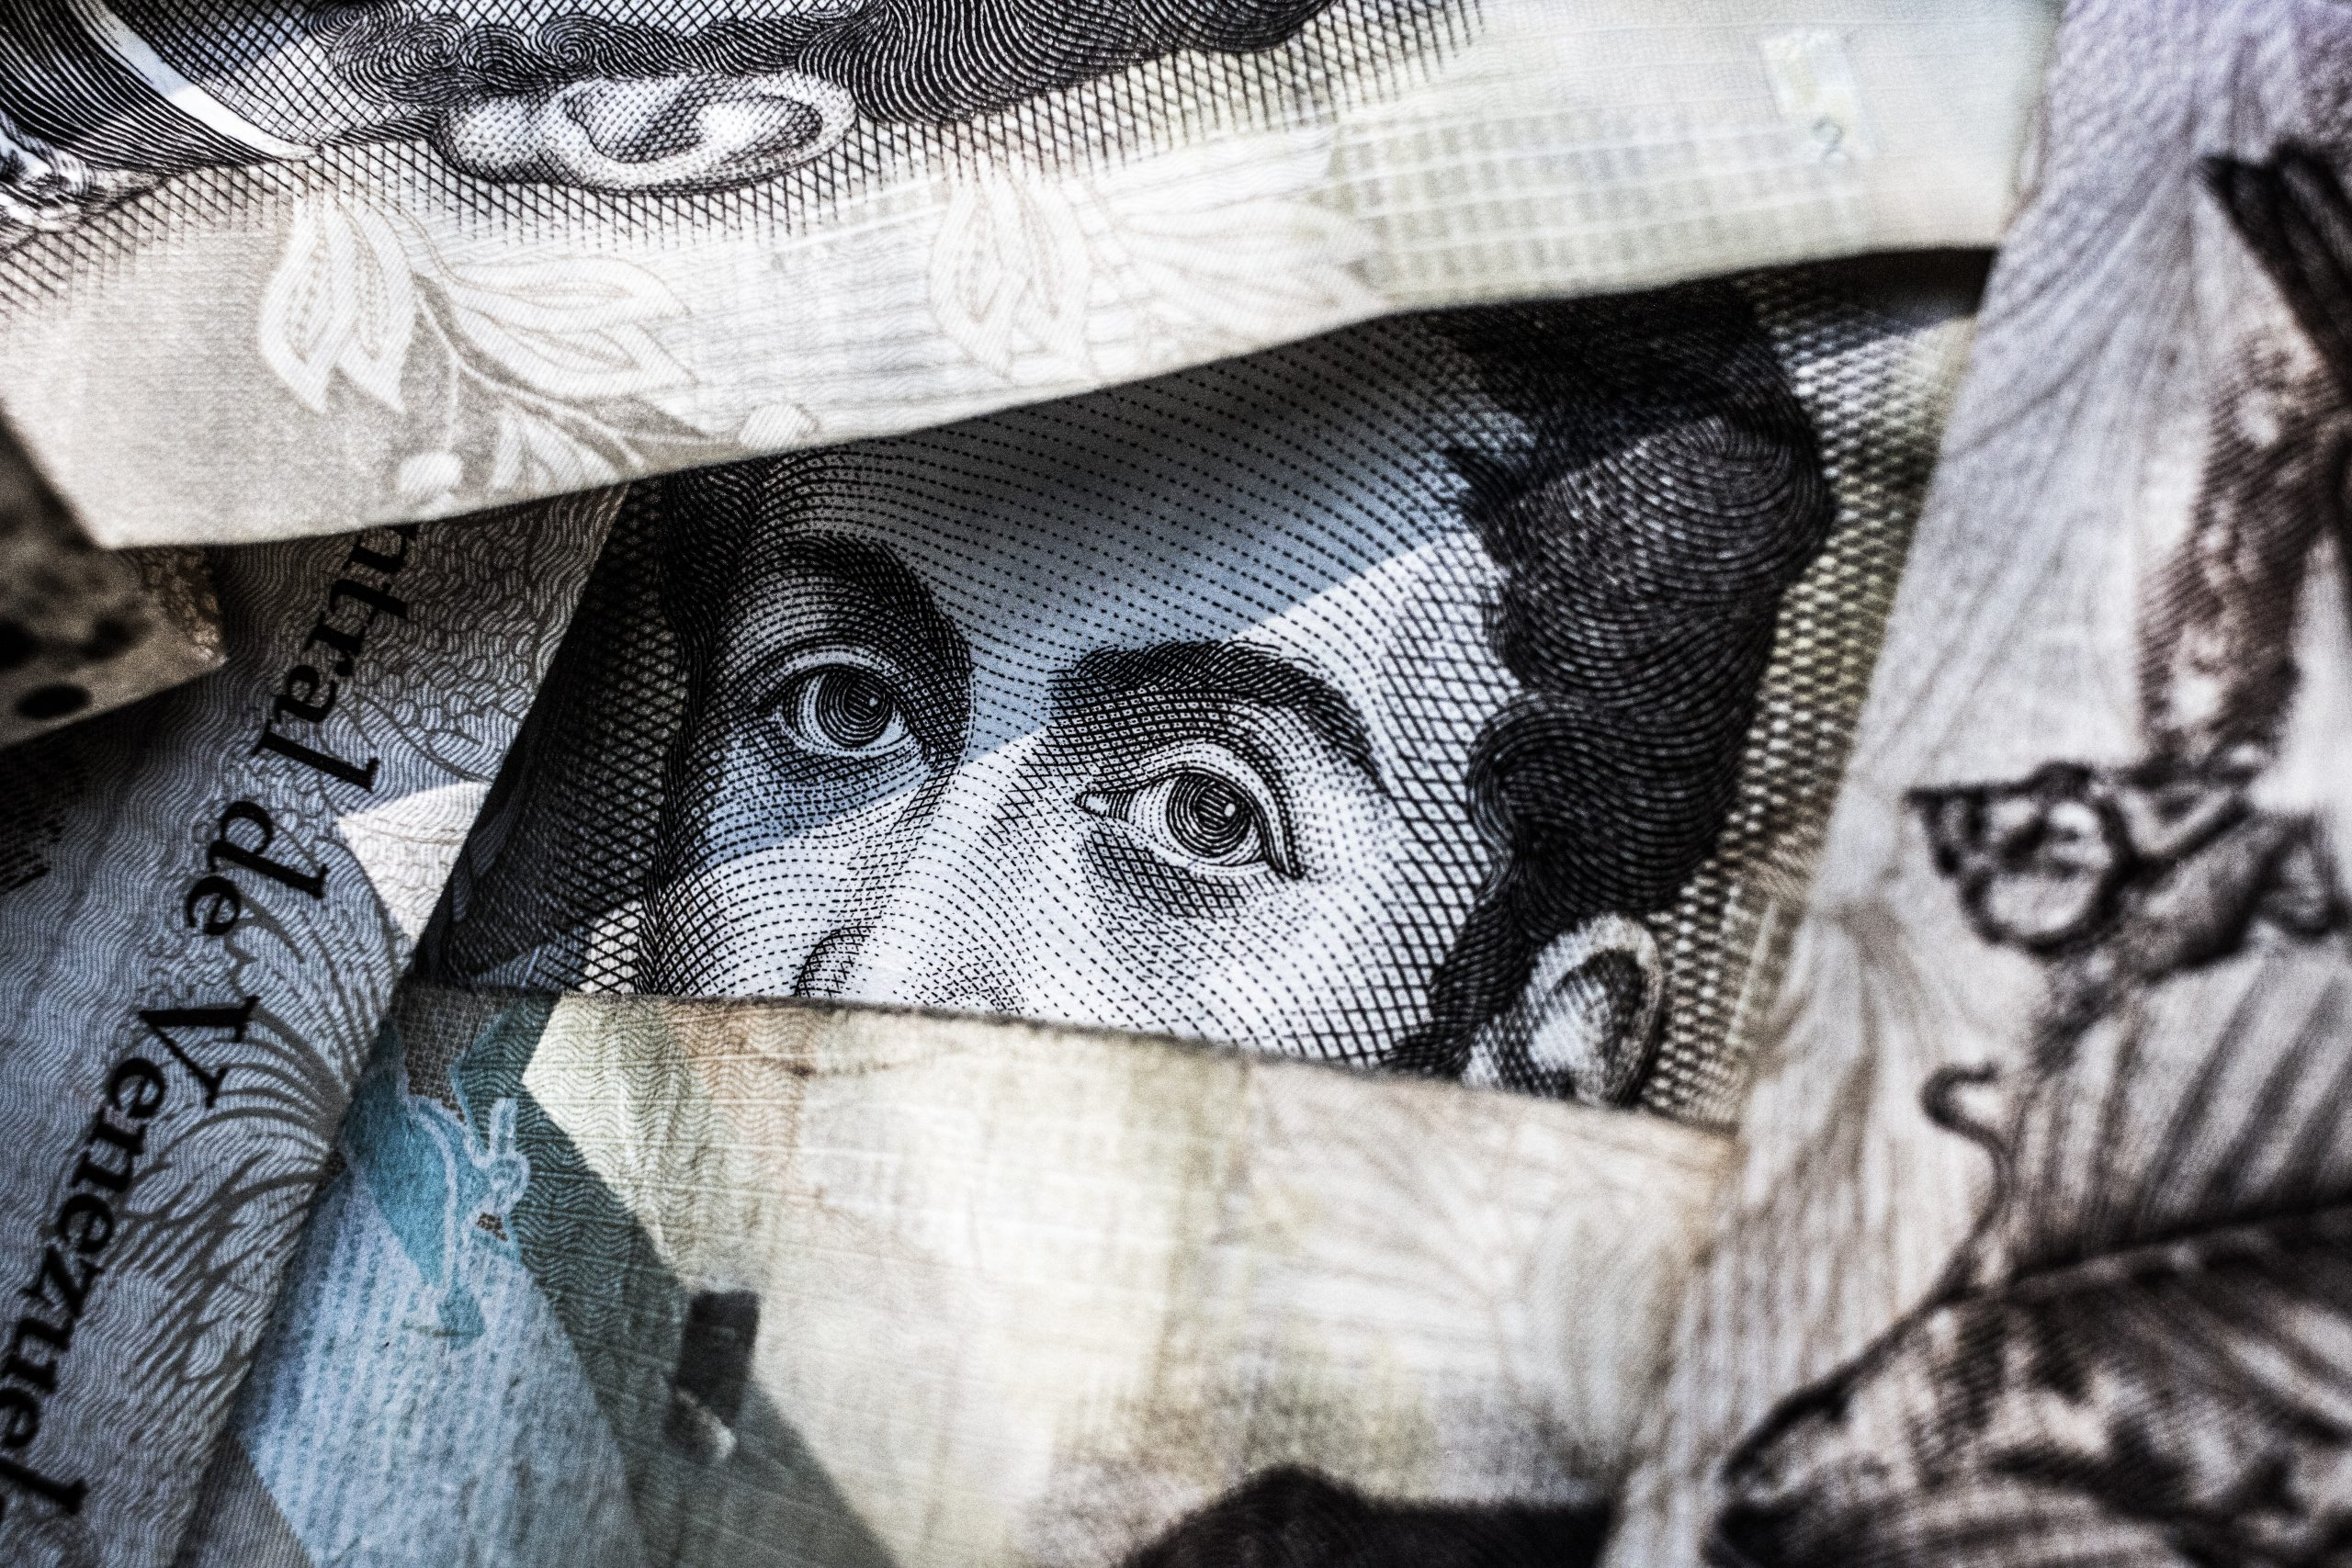 Banknote face